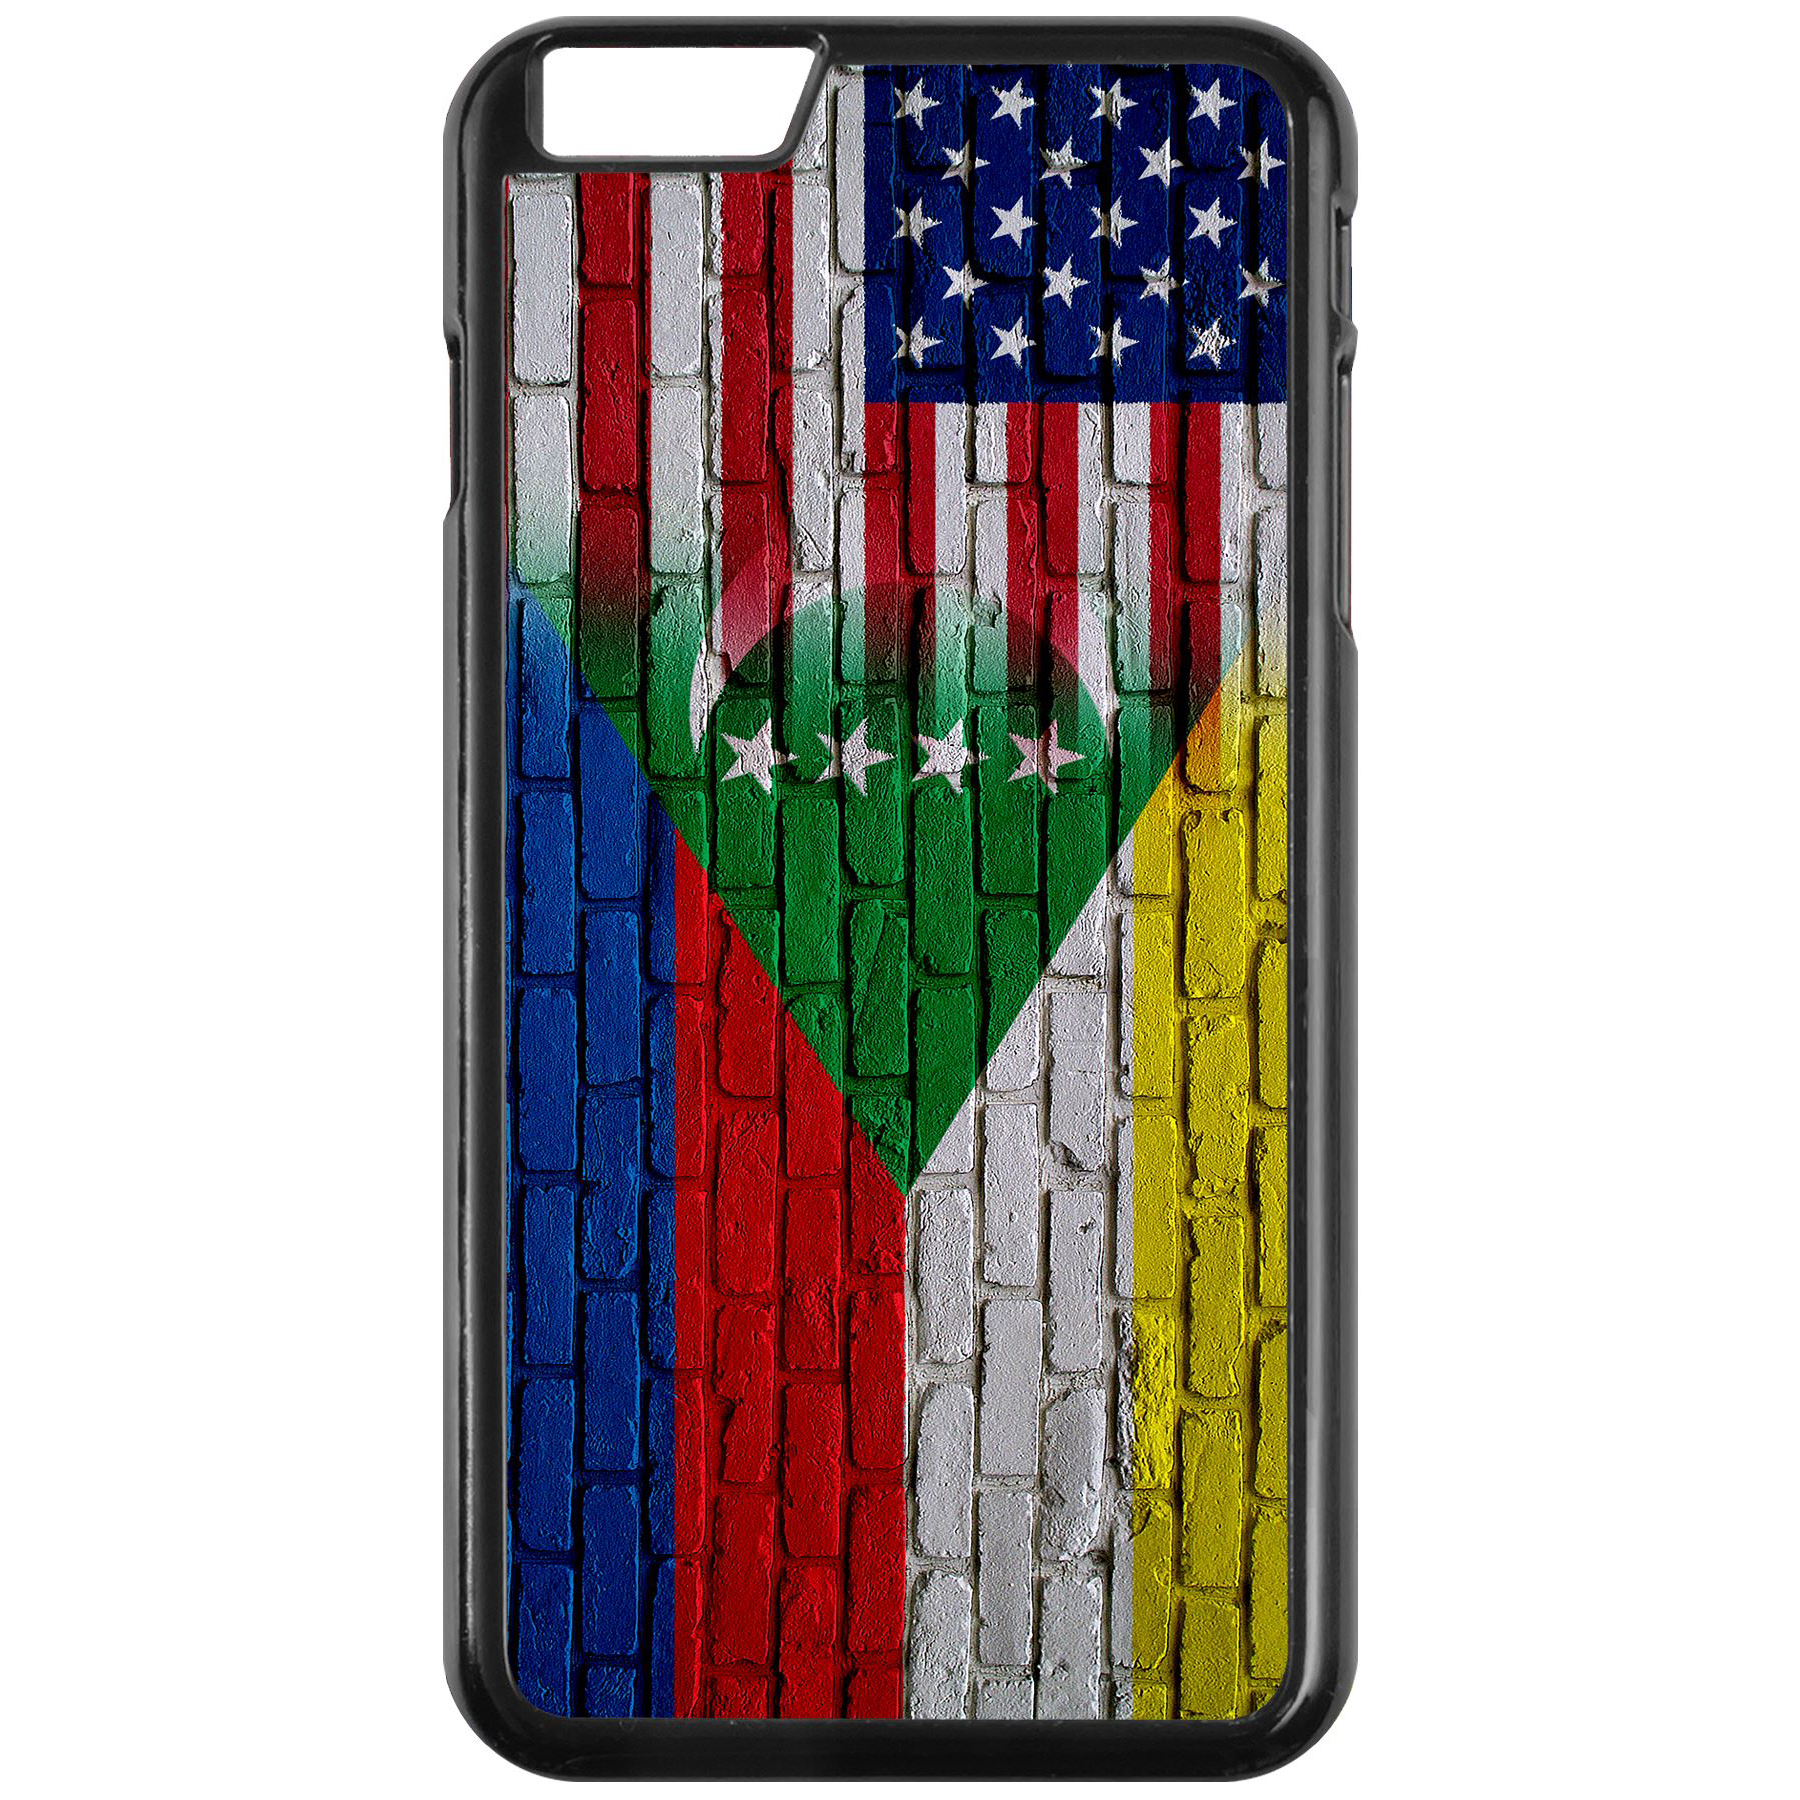 Apple-iPhone-Case-with-Flag-of-Comoros-Comorian-Many-Design-Options thumbnail 62